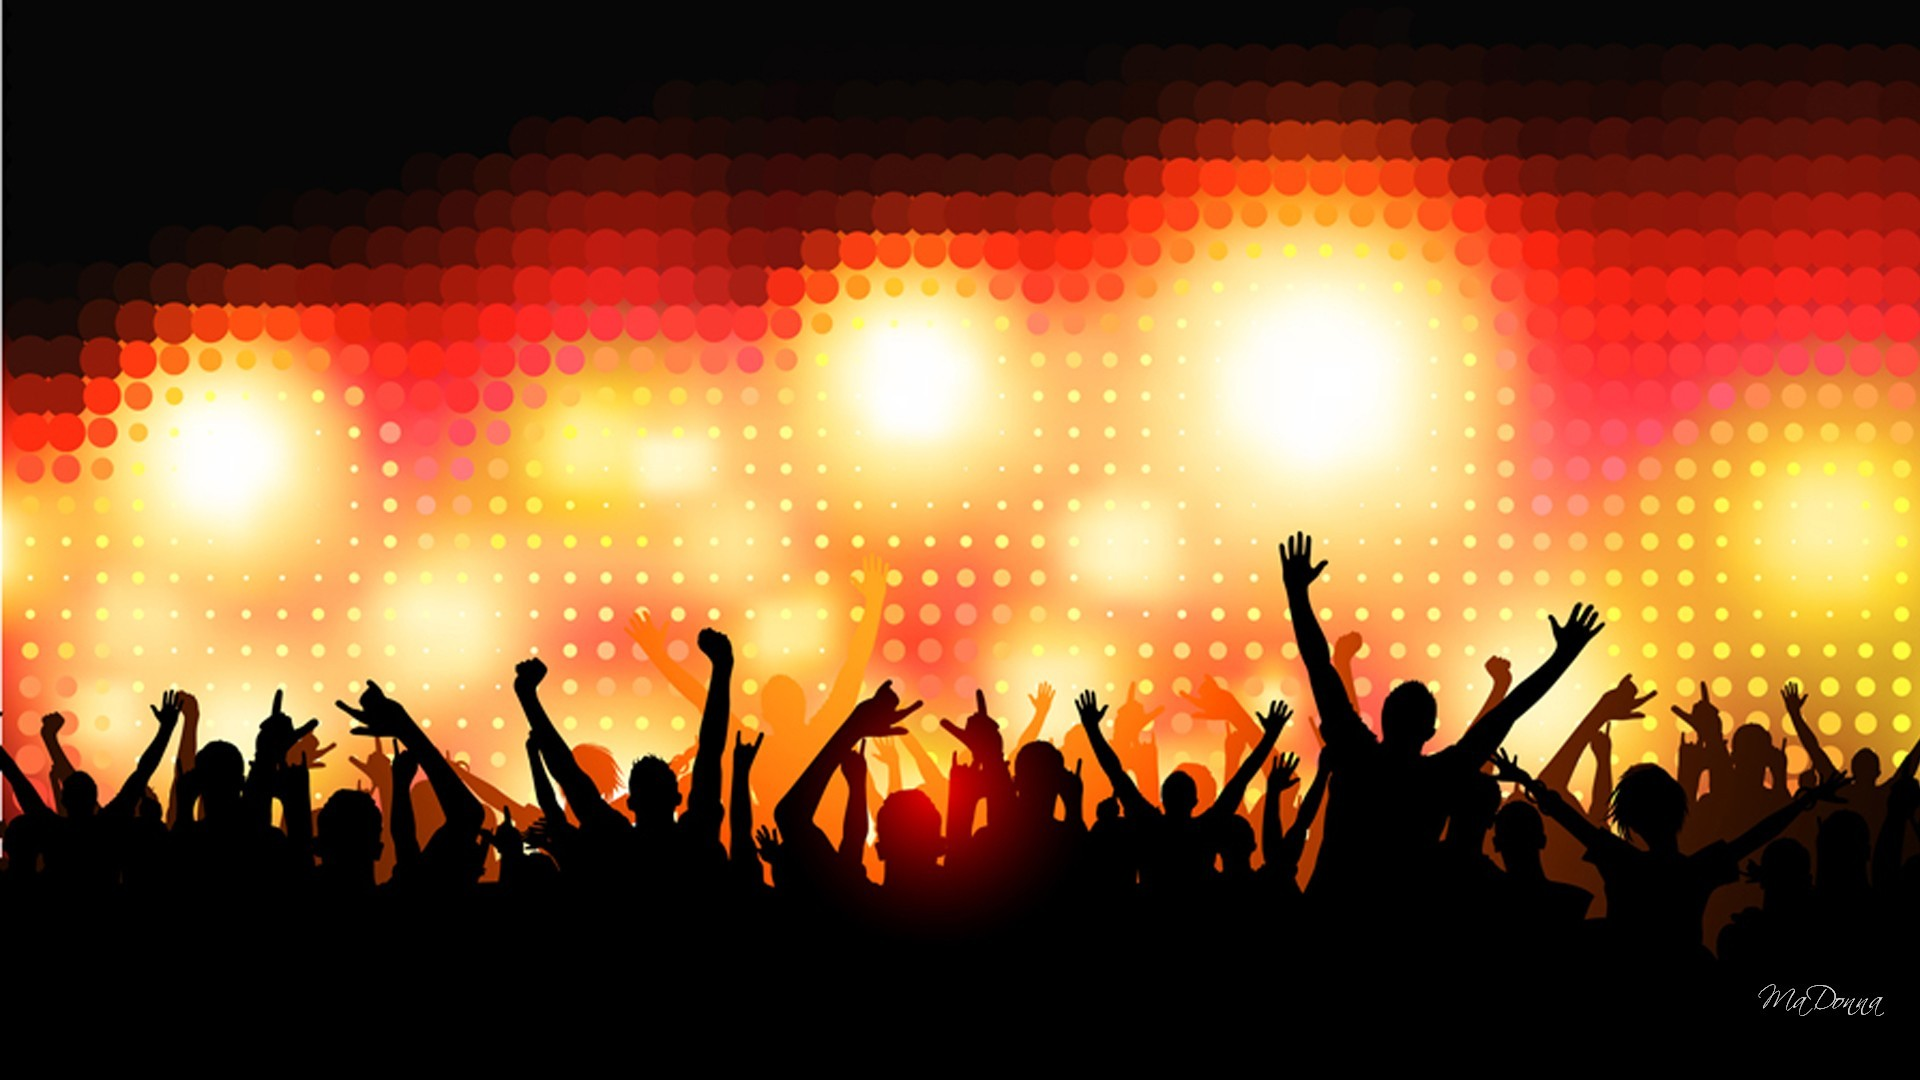 Club background download free awesome hd wallpapers for - Concert crowd wallpaper ...